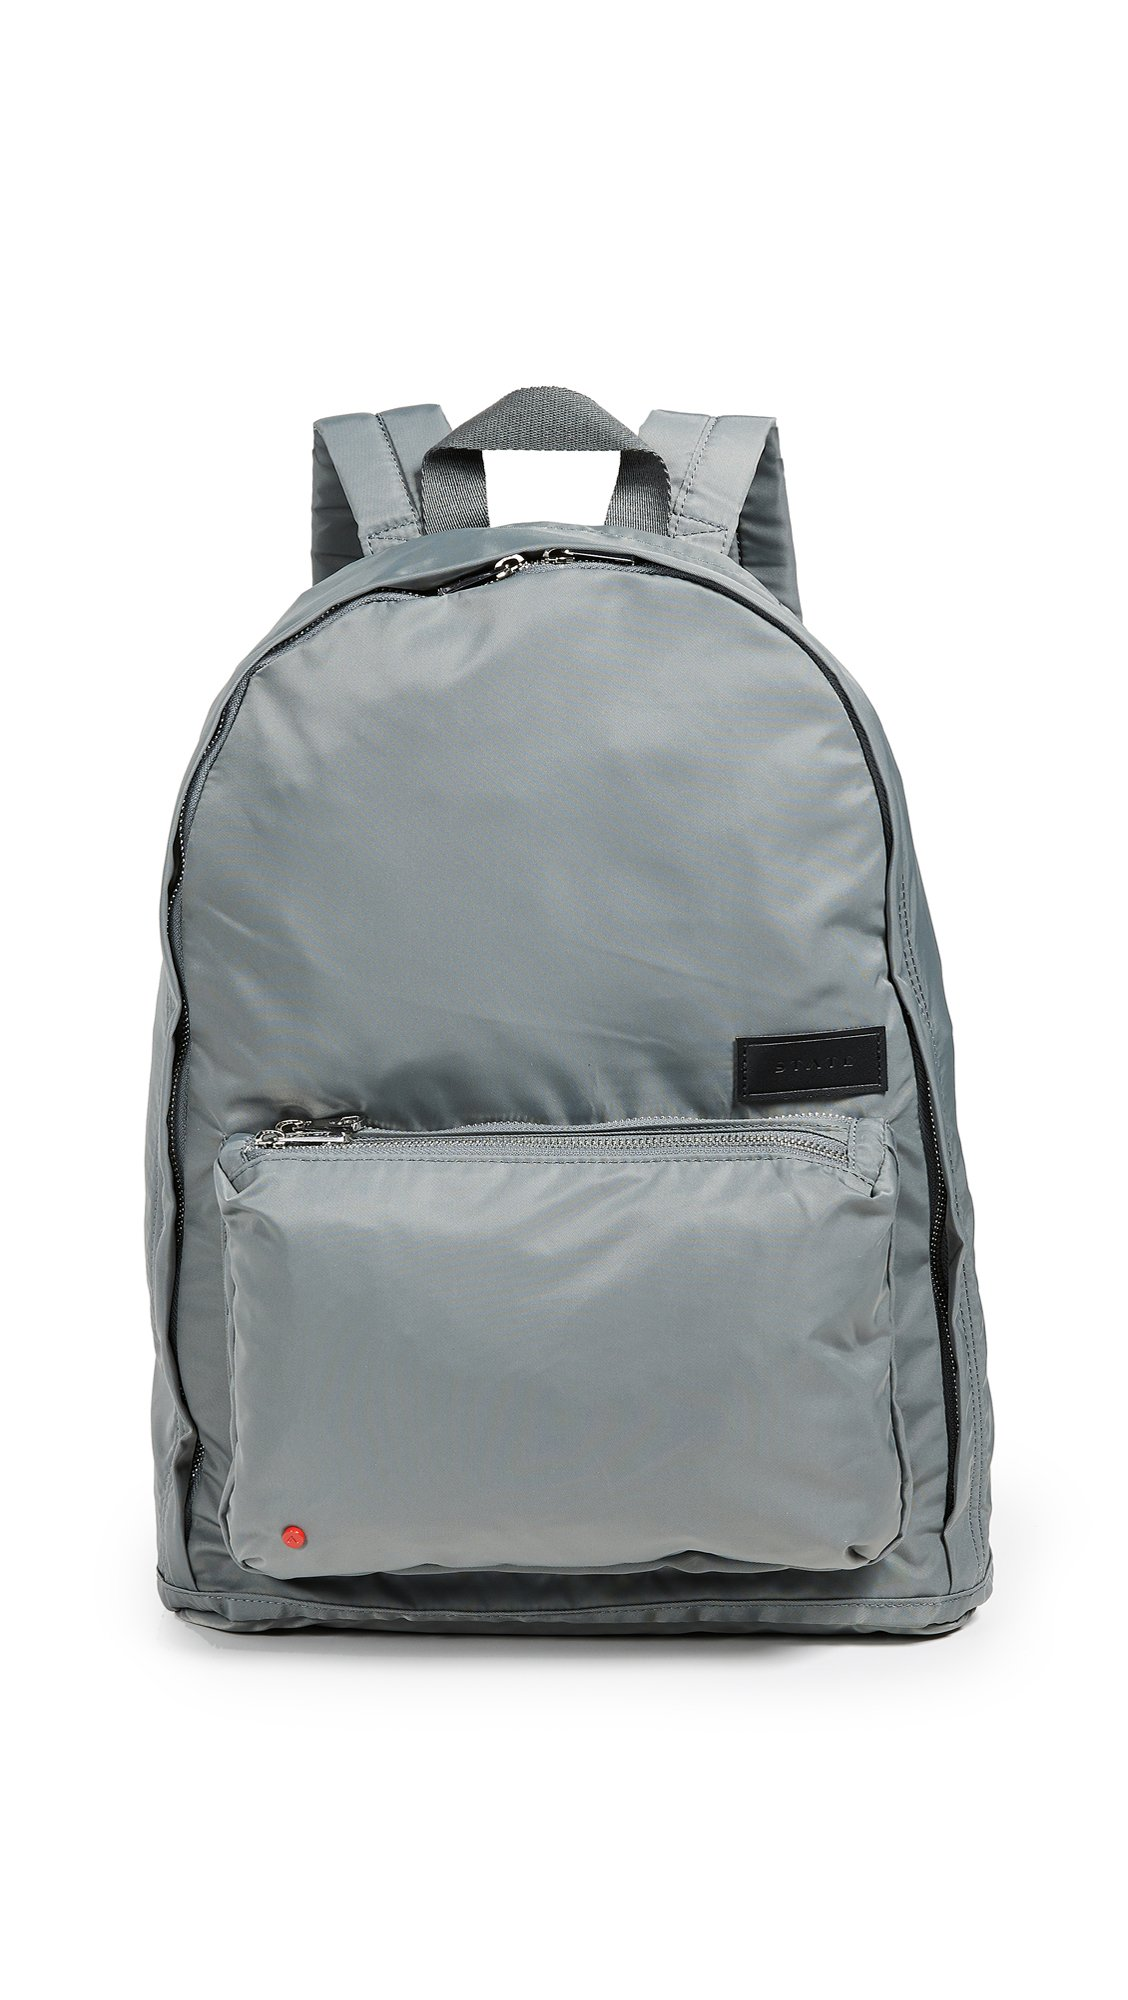 STATE Women's Lorimer Backpack, Steel Grey, One Size by STATE Bags